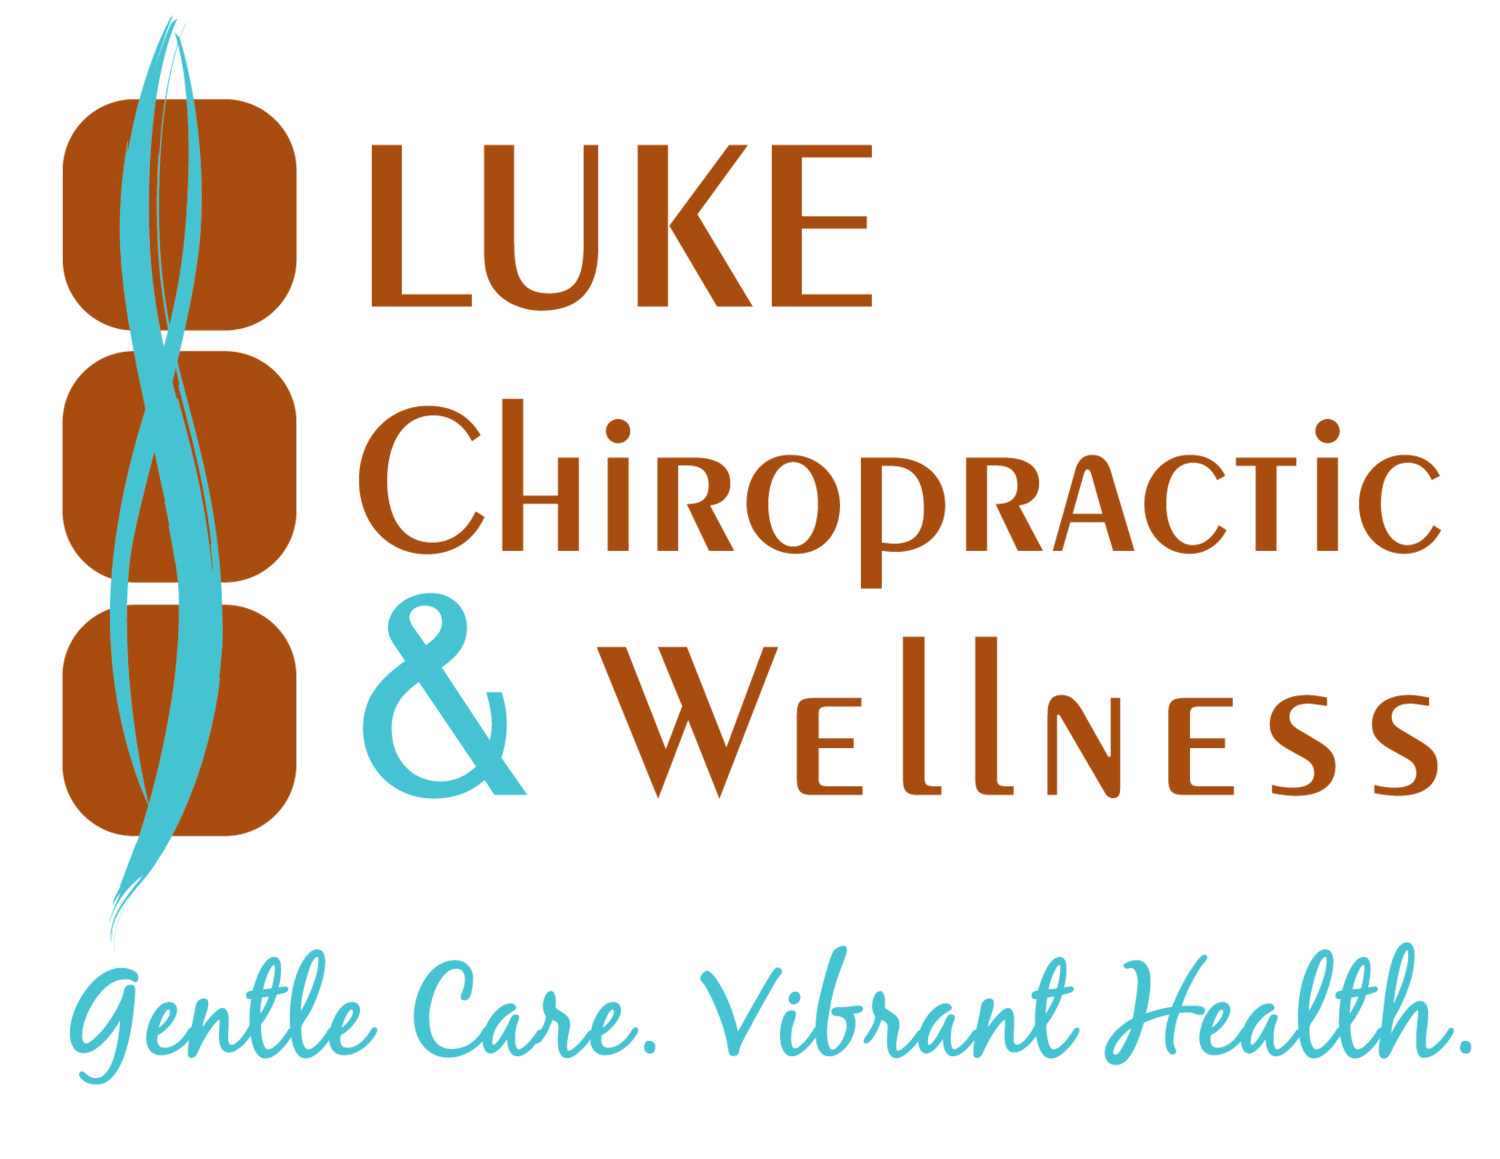 Luke Chiropractic & Wellness